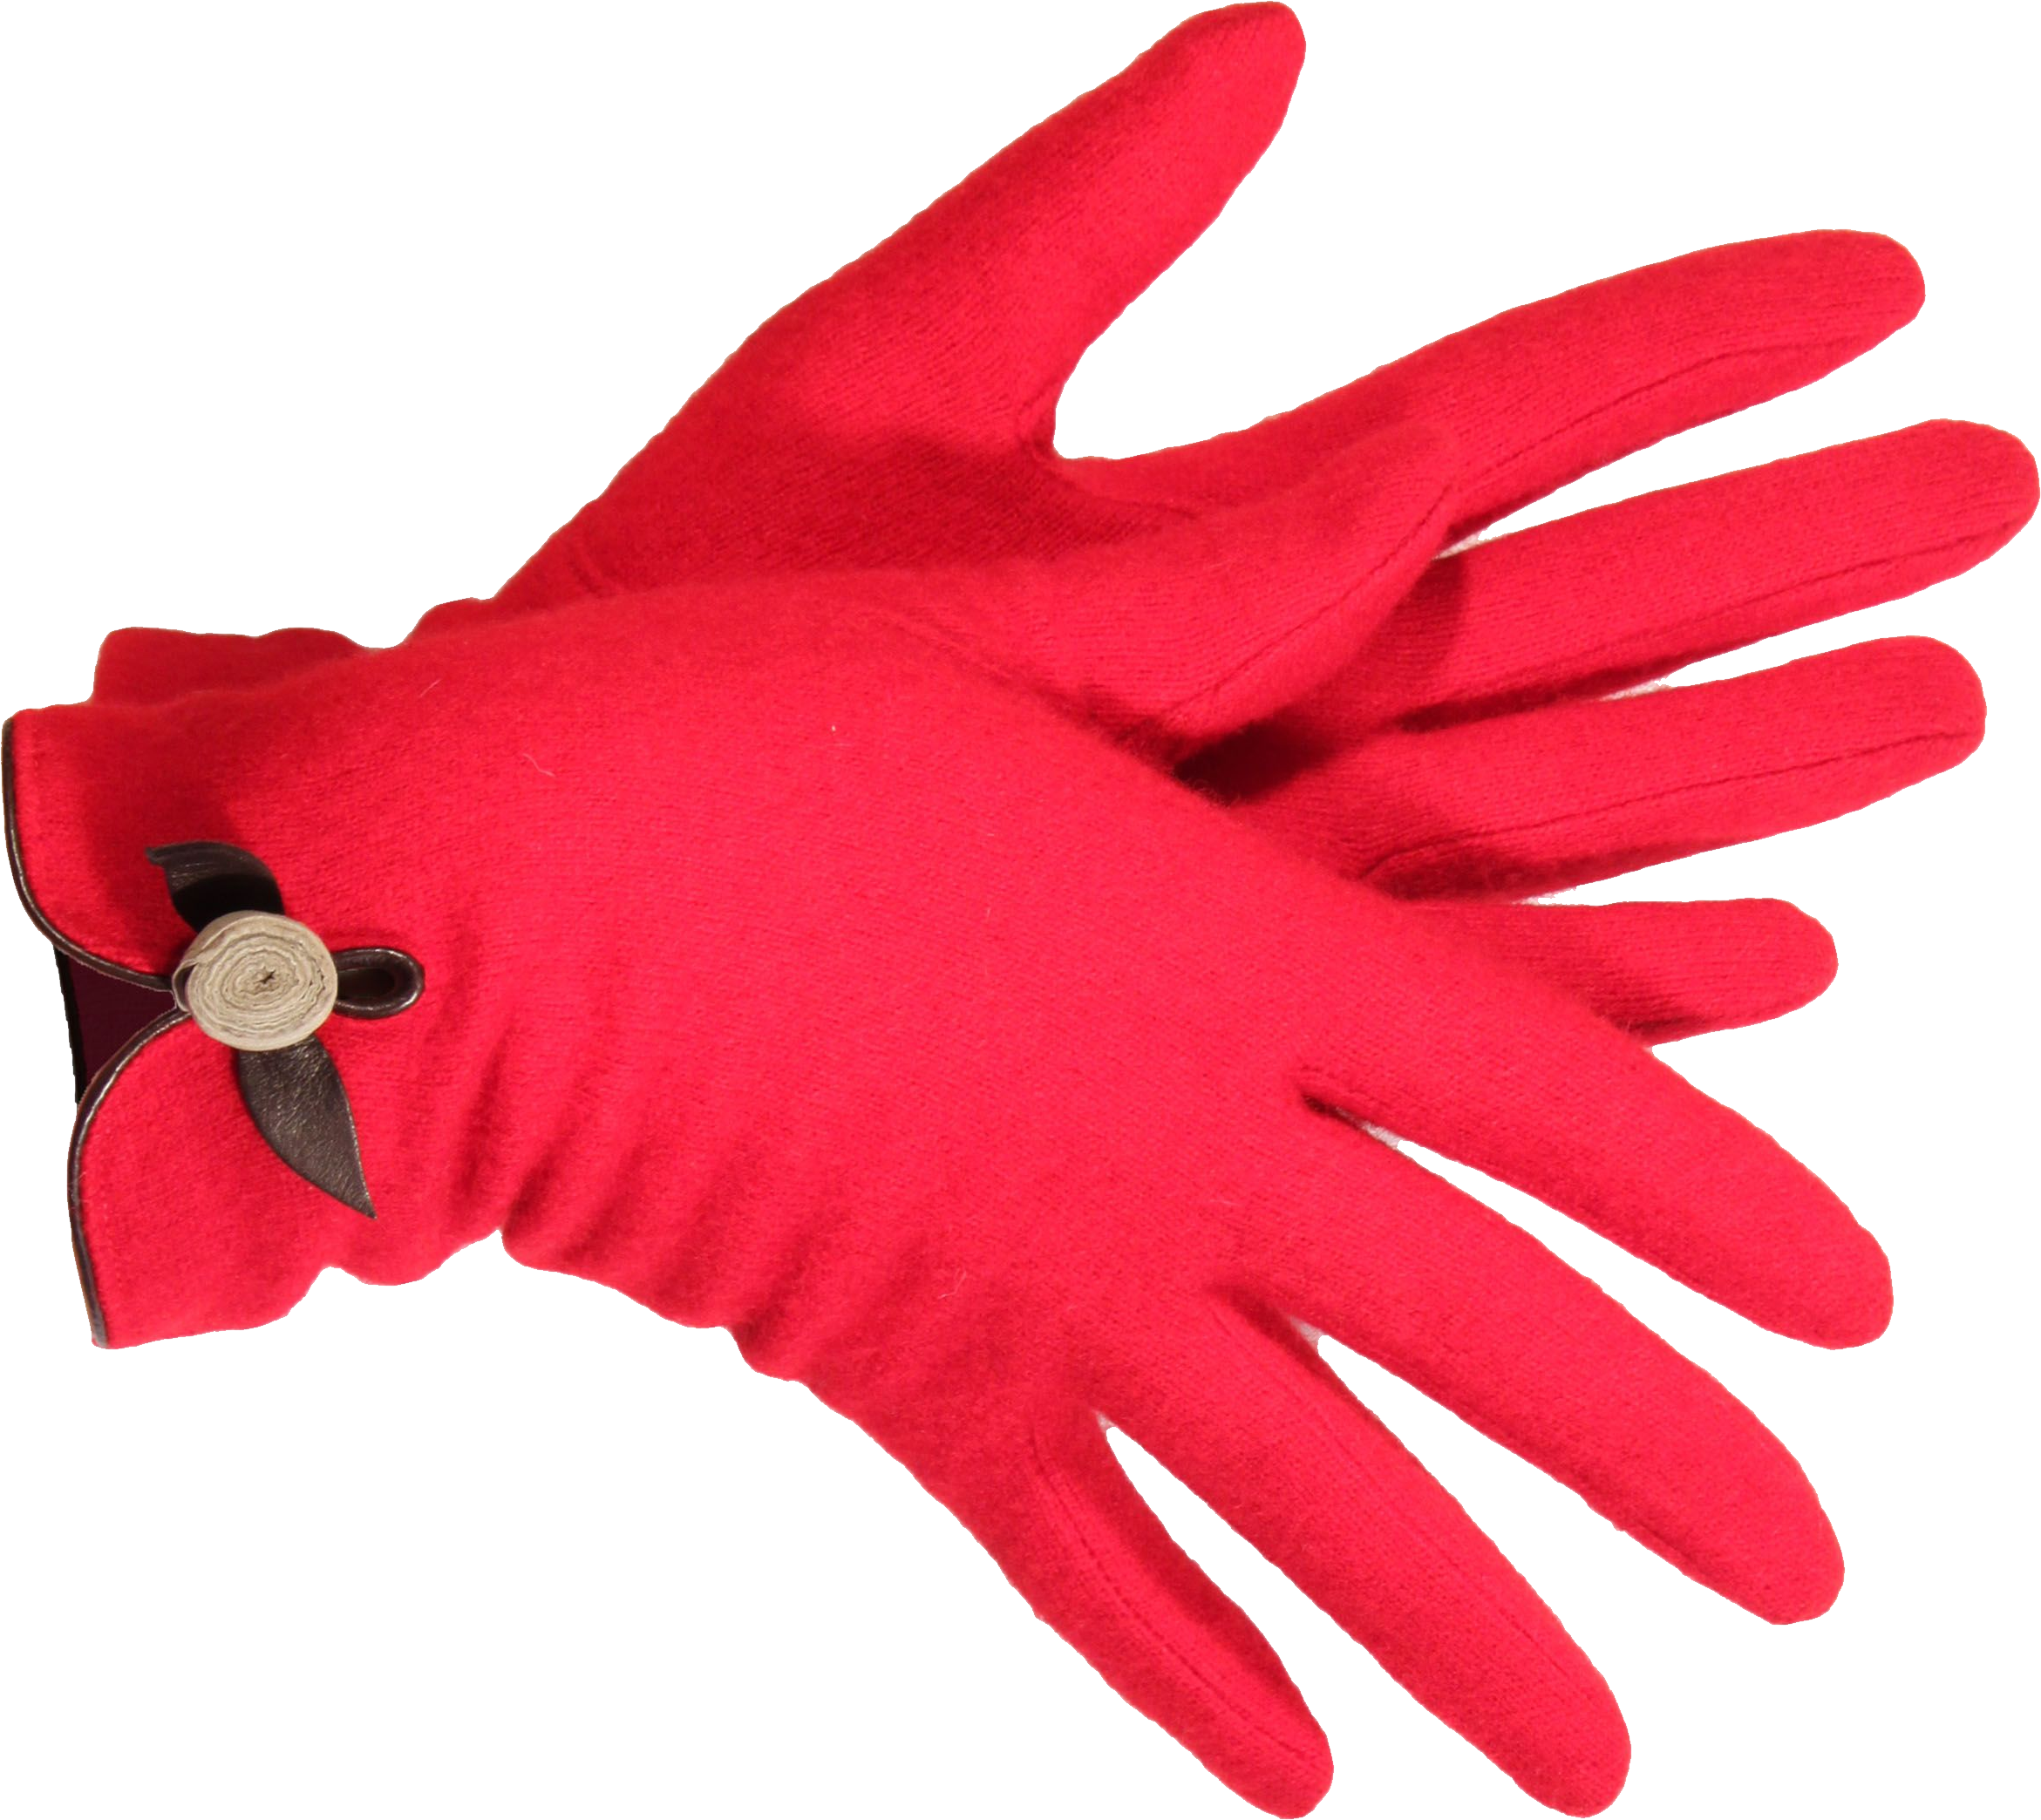 Mittens clipart hand glove. Gloves png images free